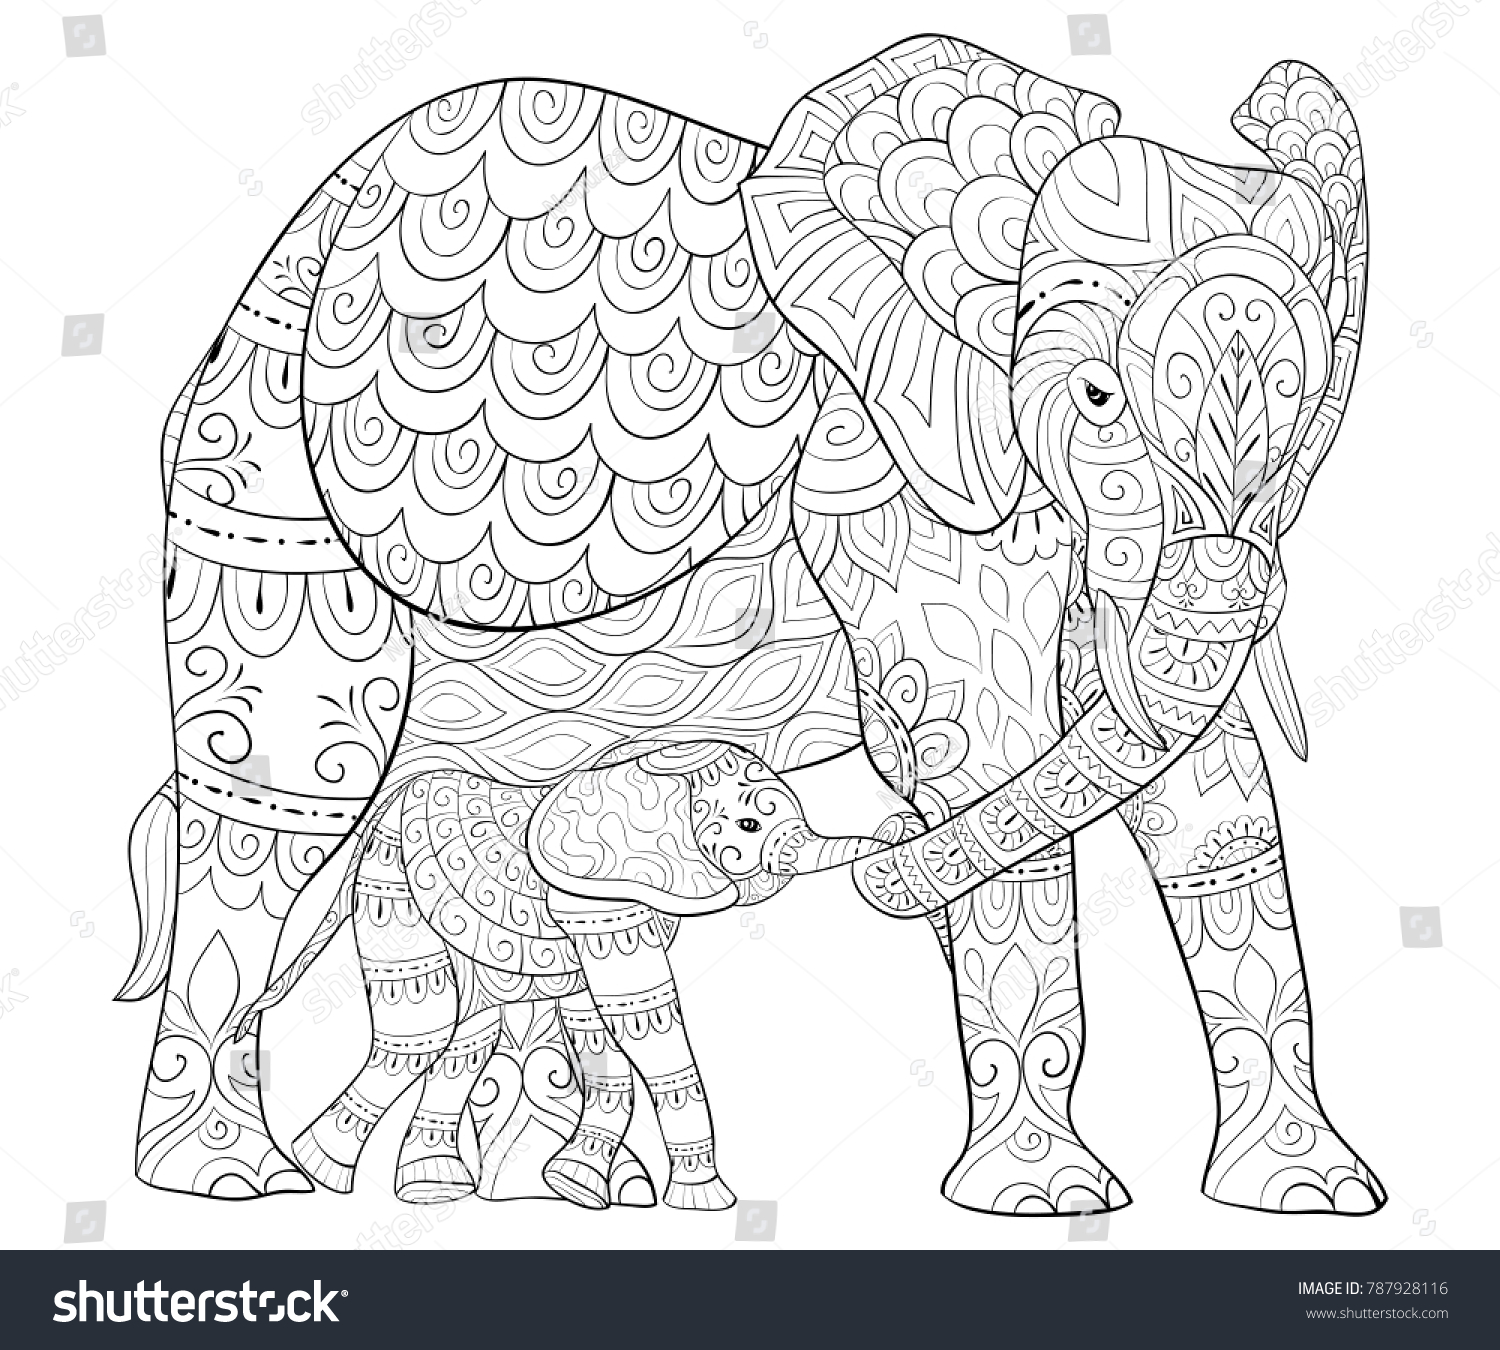 Adult Coloring Bookpage A Mother Elephant With Her Babyimage For Relaxing